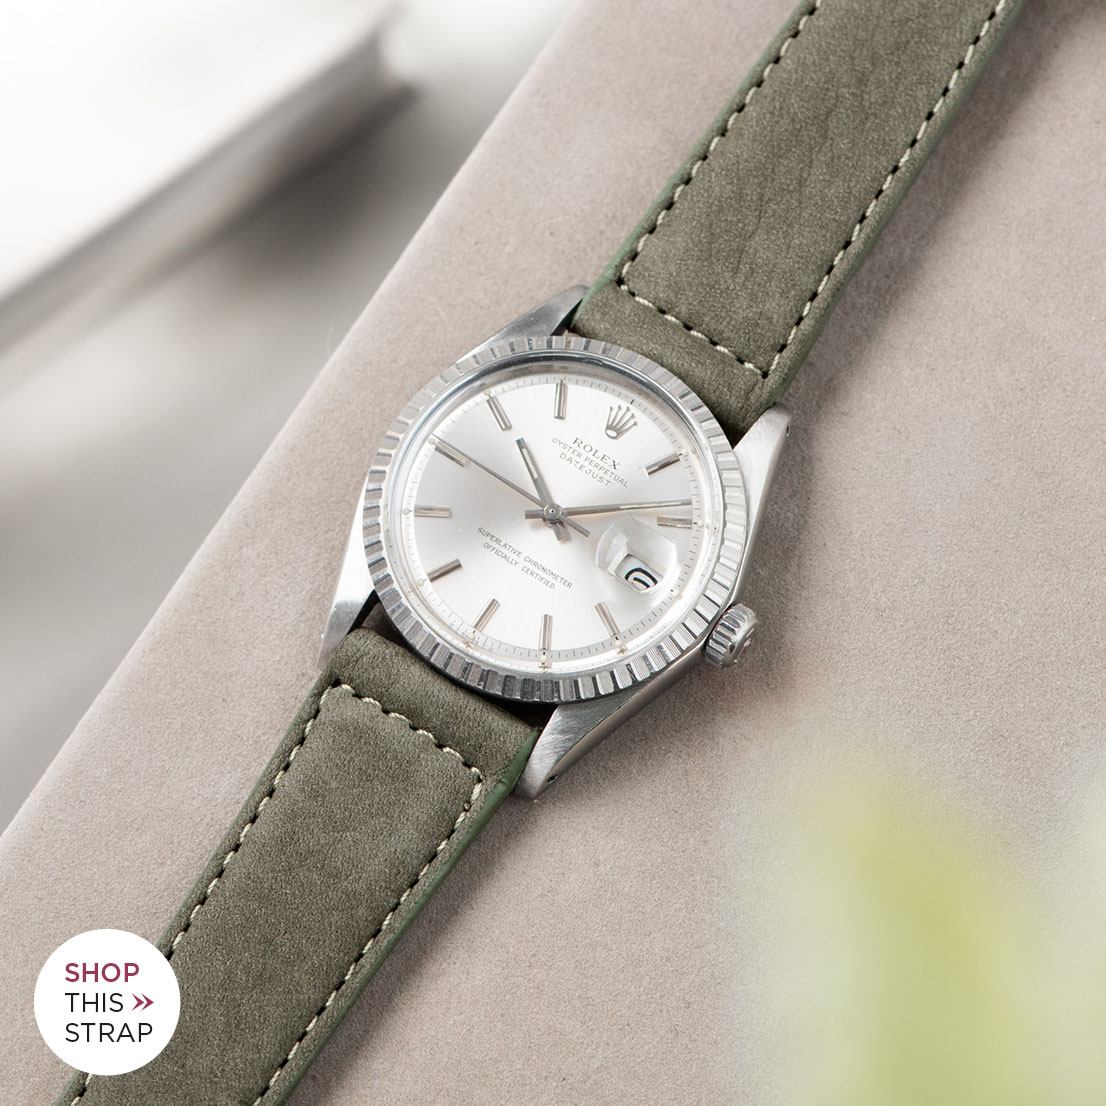 Bulang and sons_Strap Guide_Rolex Datejust Silverdial 1601 1603 1600 1630_OLIVE GREY NUBUCK LEATHER WATCH STRAP